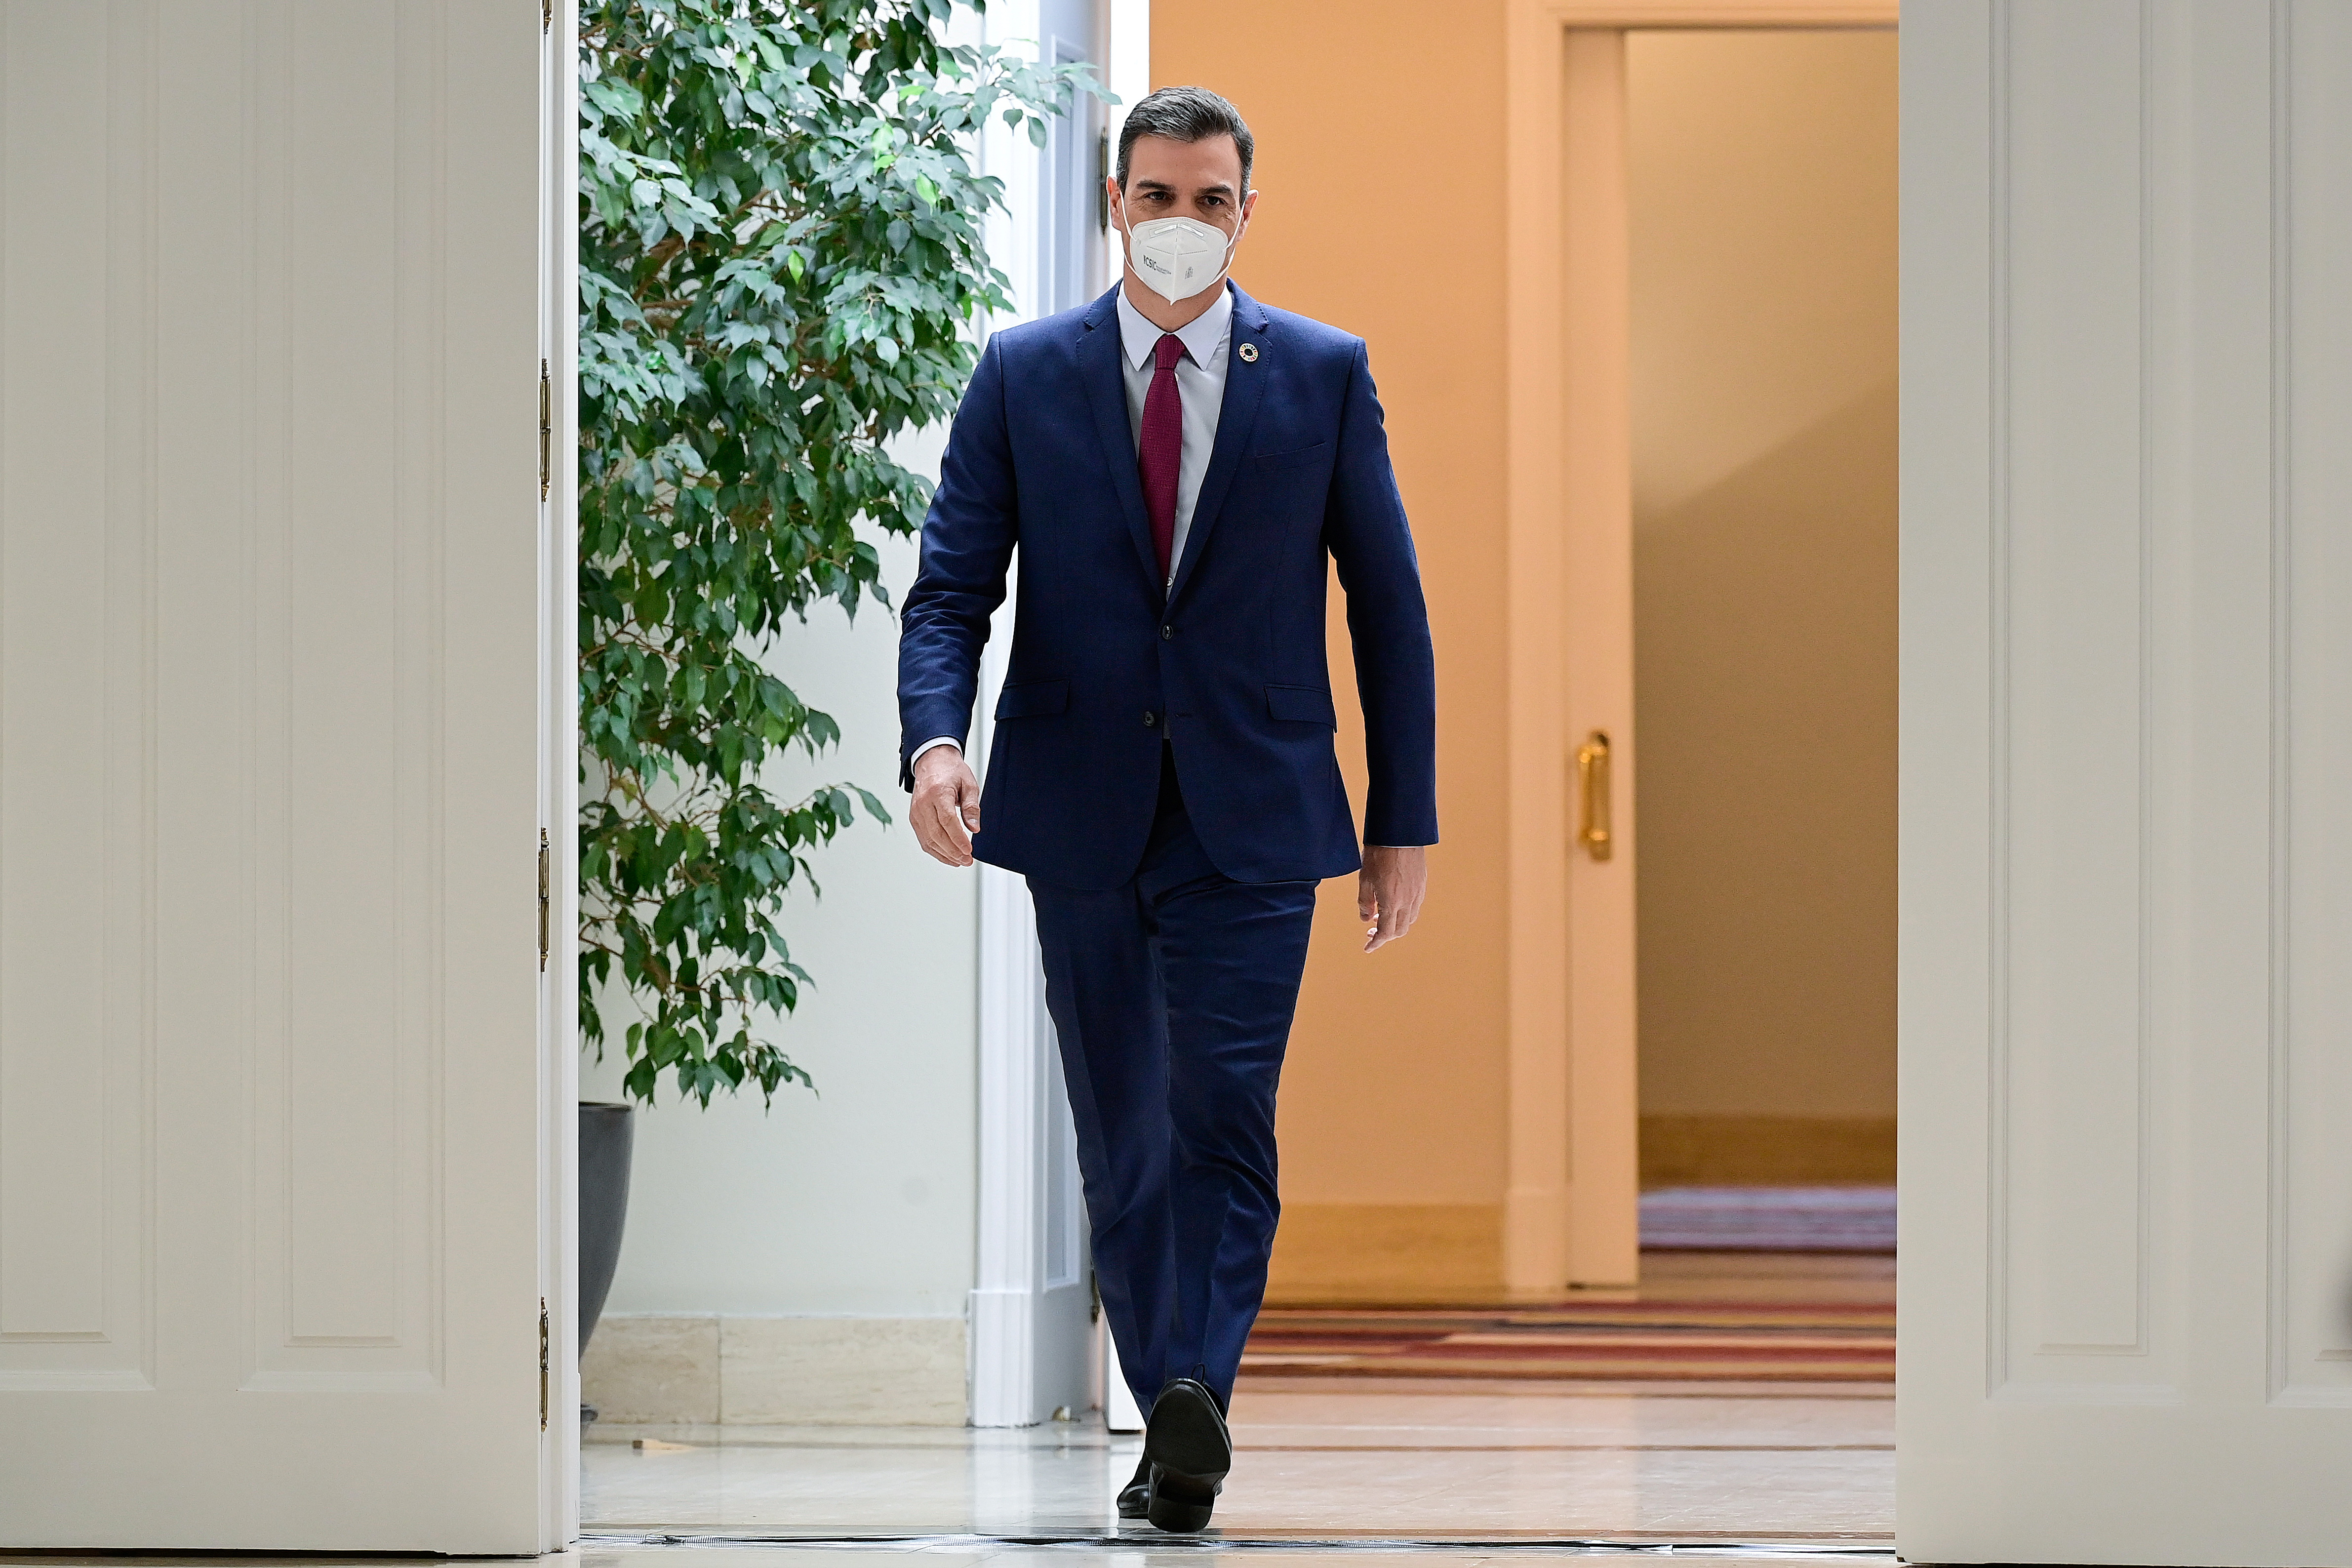 Spanish Prime Minister Pedro Sanchez arrives to a news conference, amid the coronavirus disease (COVID-19) pandemic, at Moncloa Palace, in Madrid, Spain December 29, 2020. Javier Soriano/Pool via Reuters